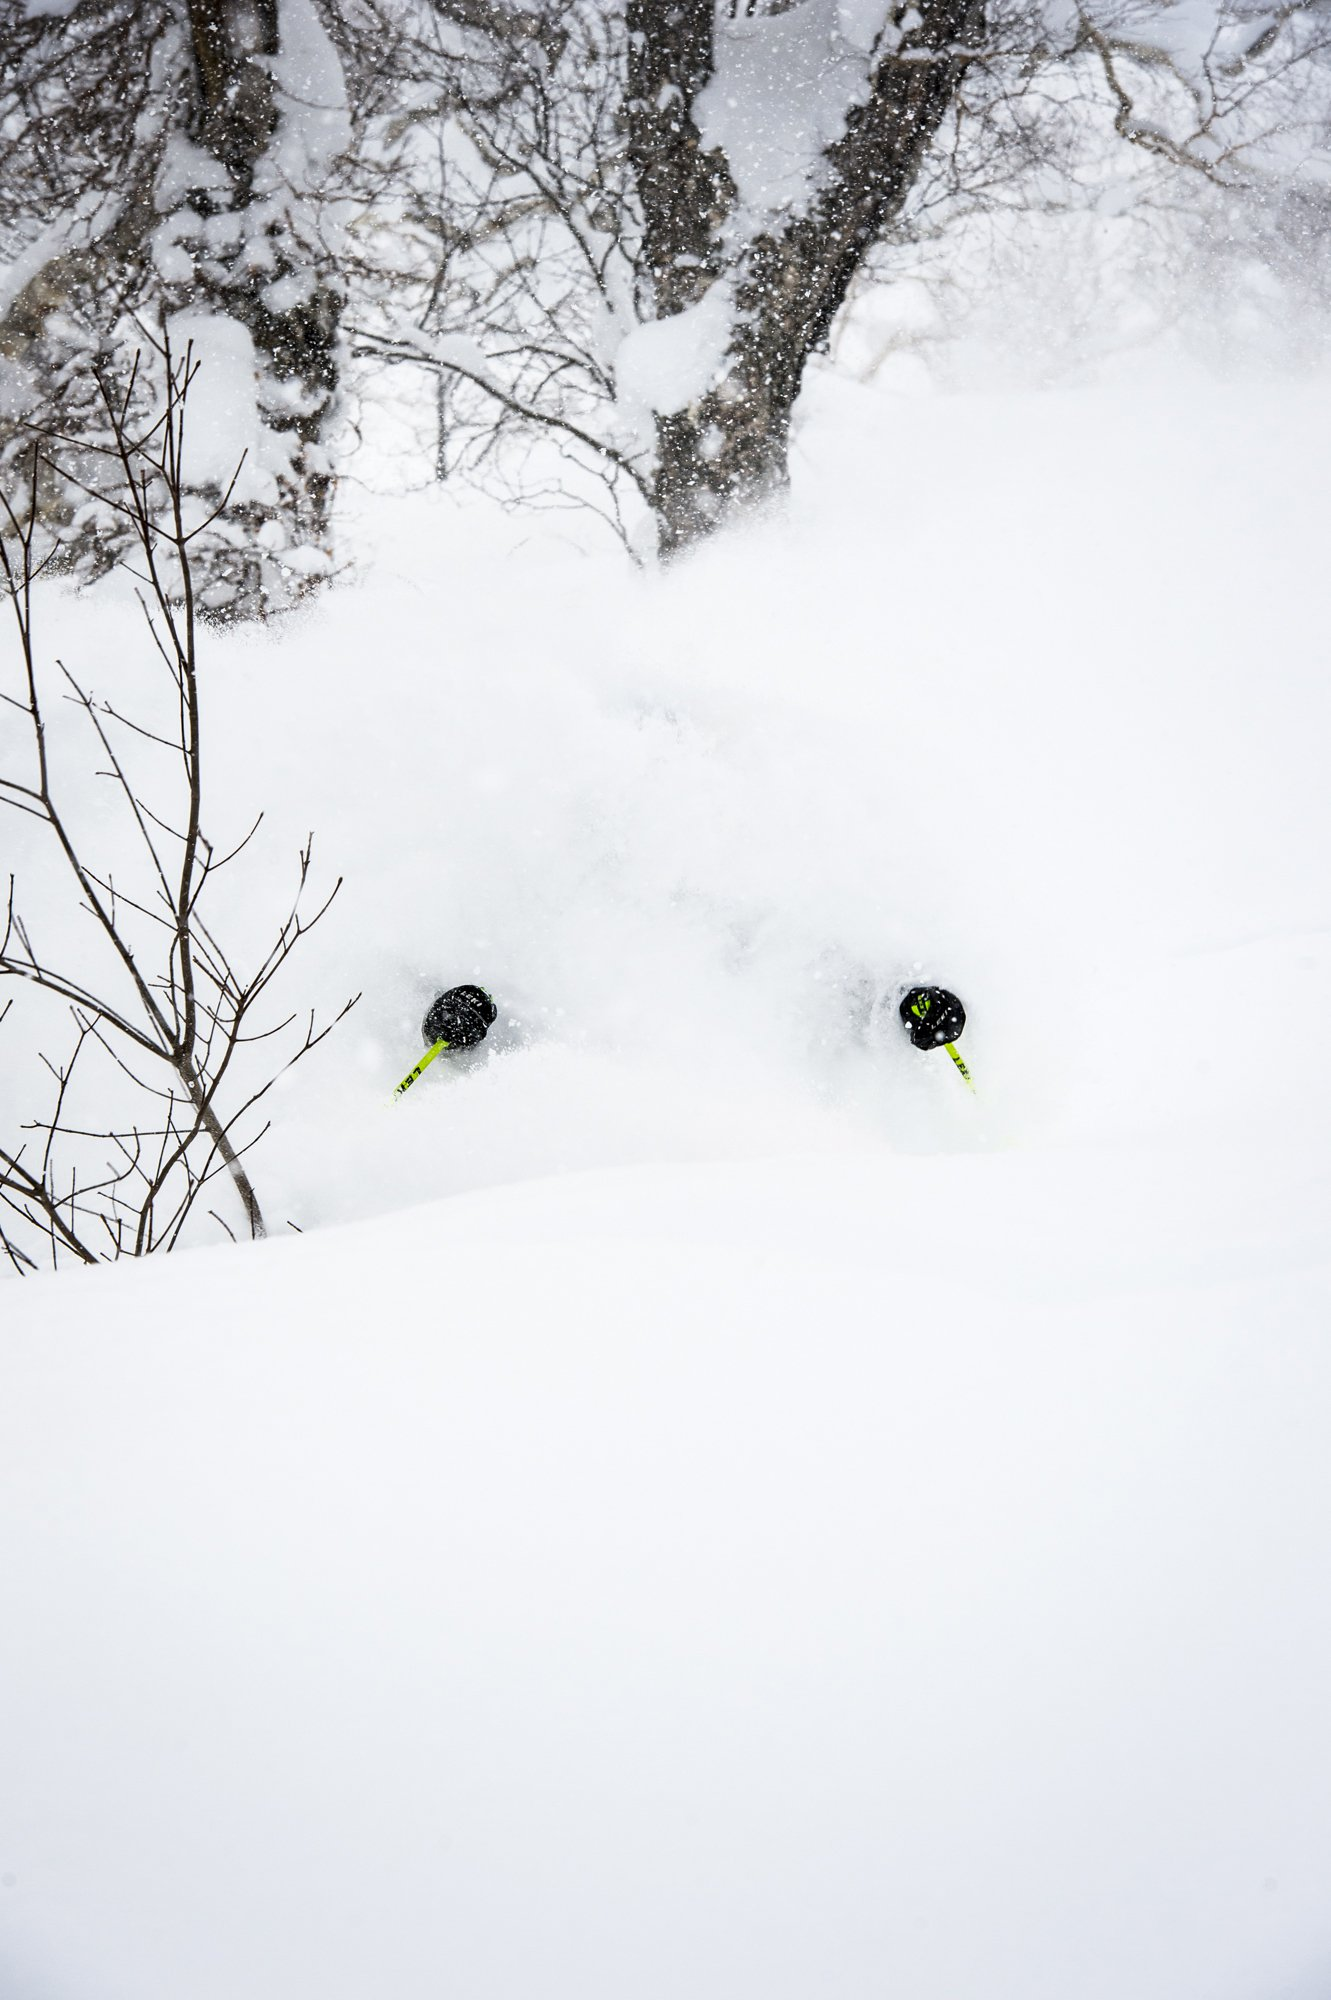 Bottomless Powder?